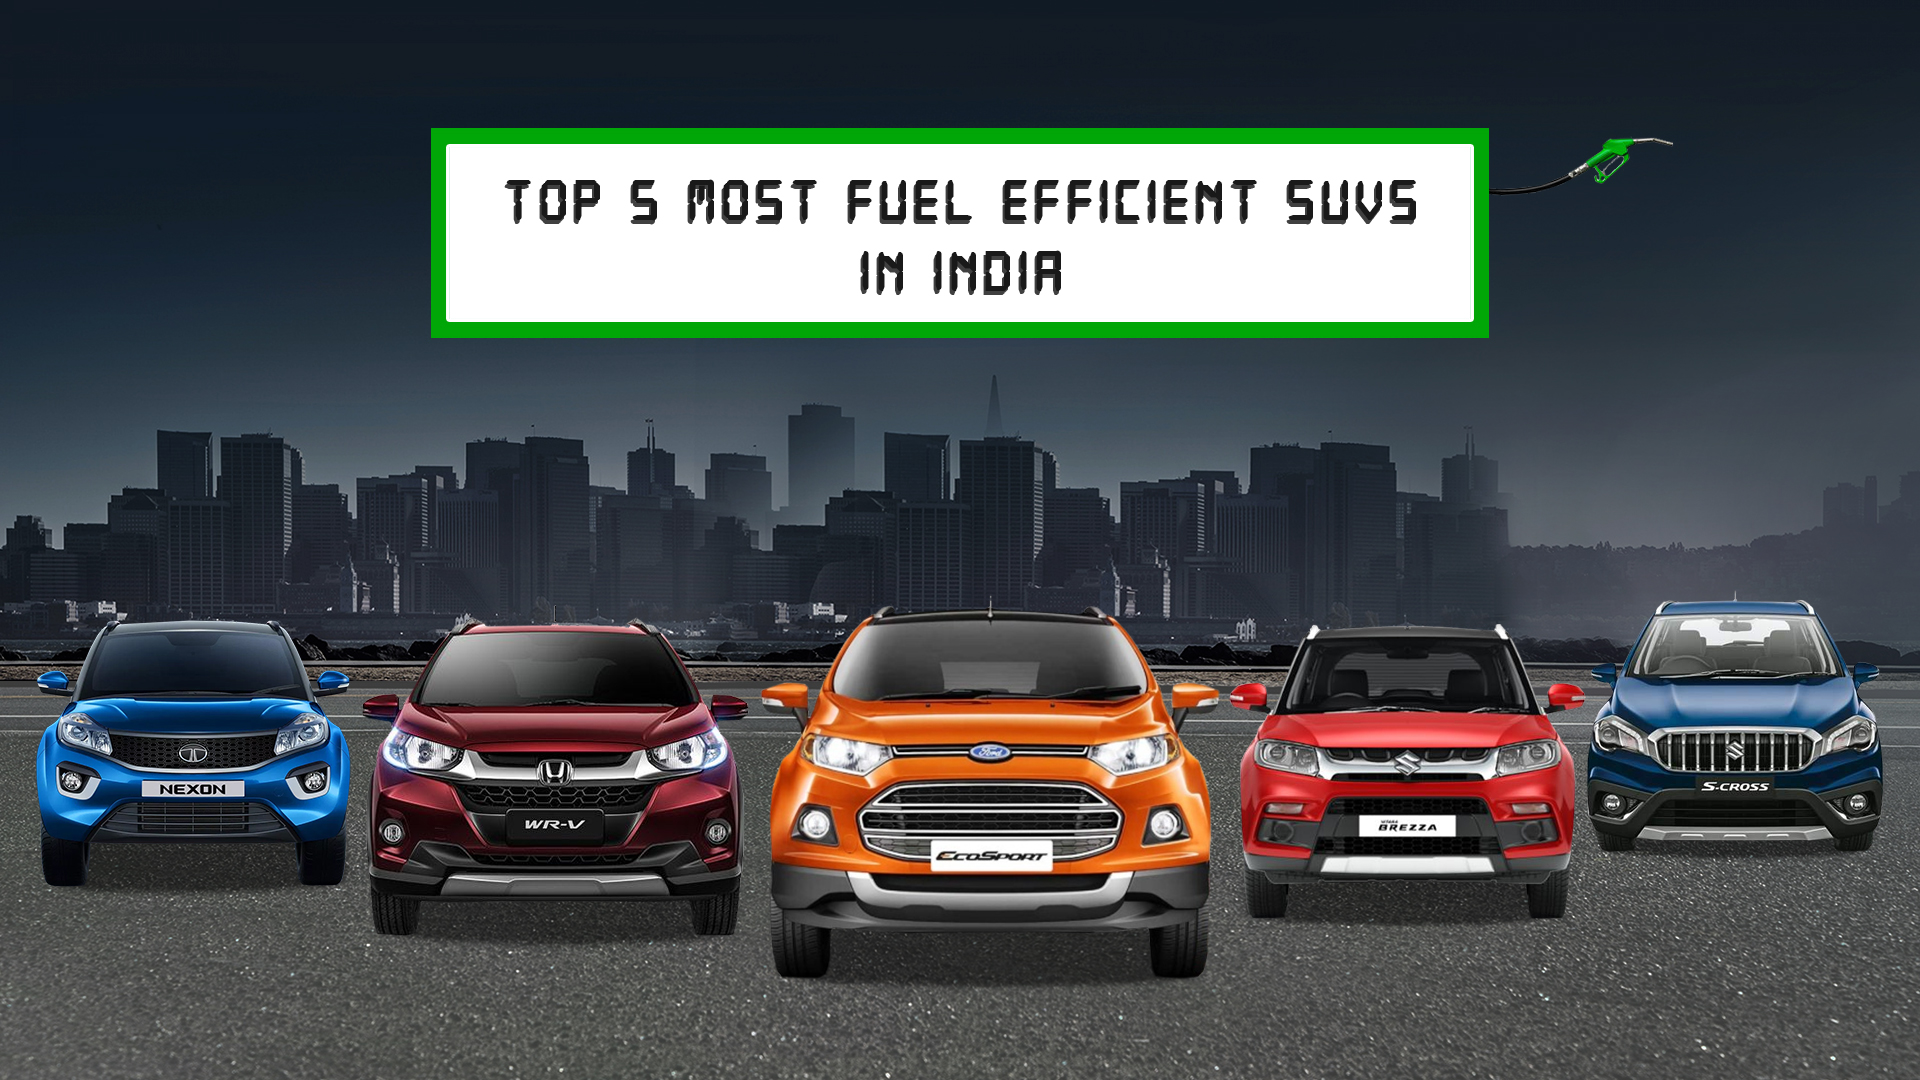 Top 5 Most Fuel- Efficient SUVS In India